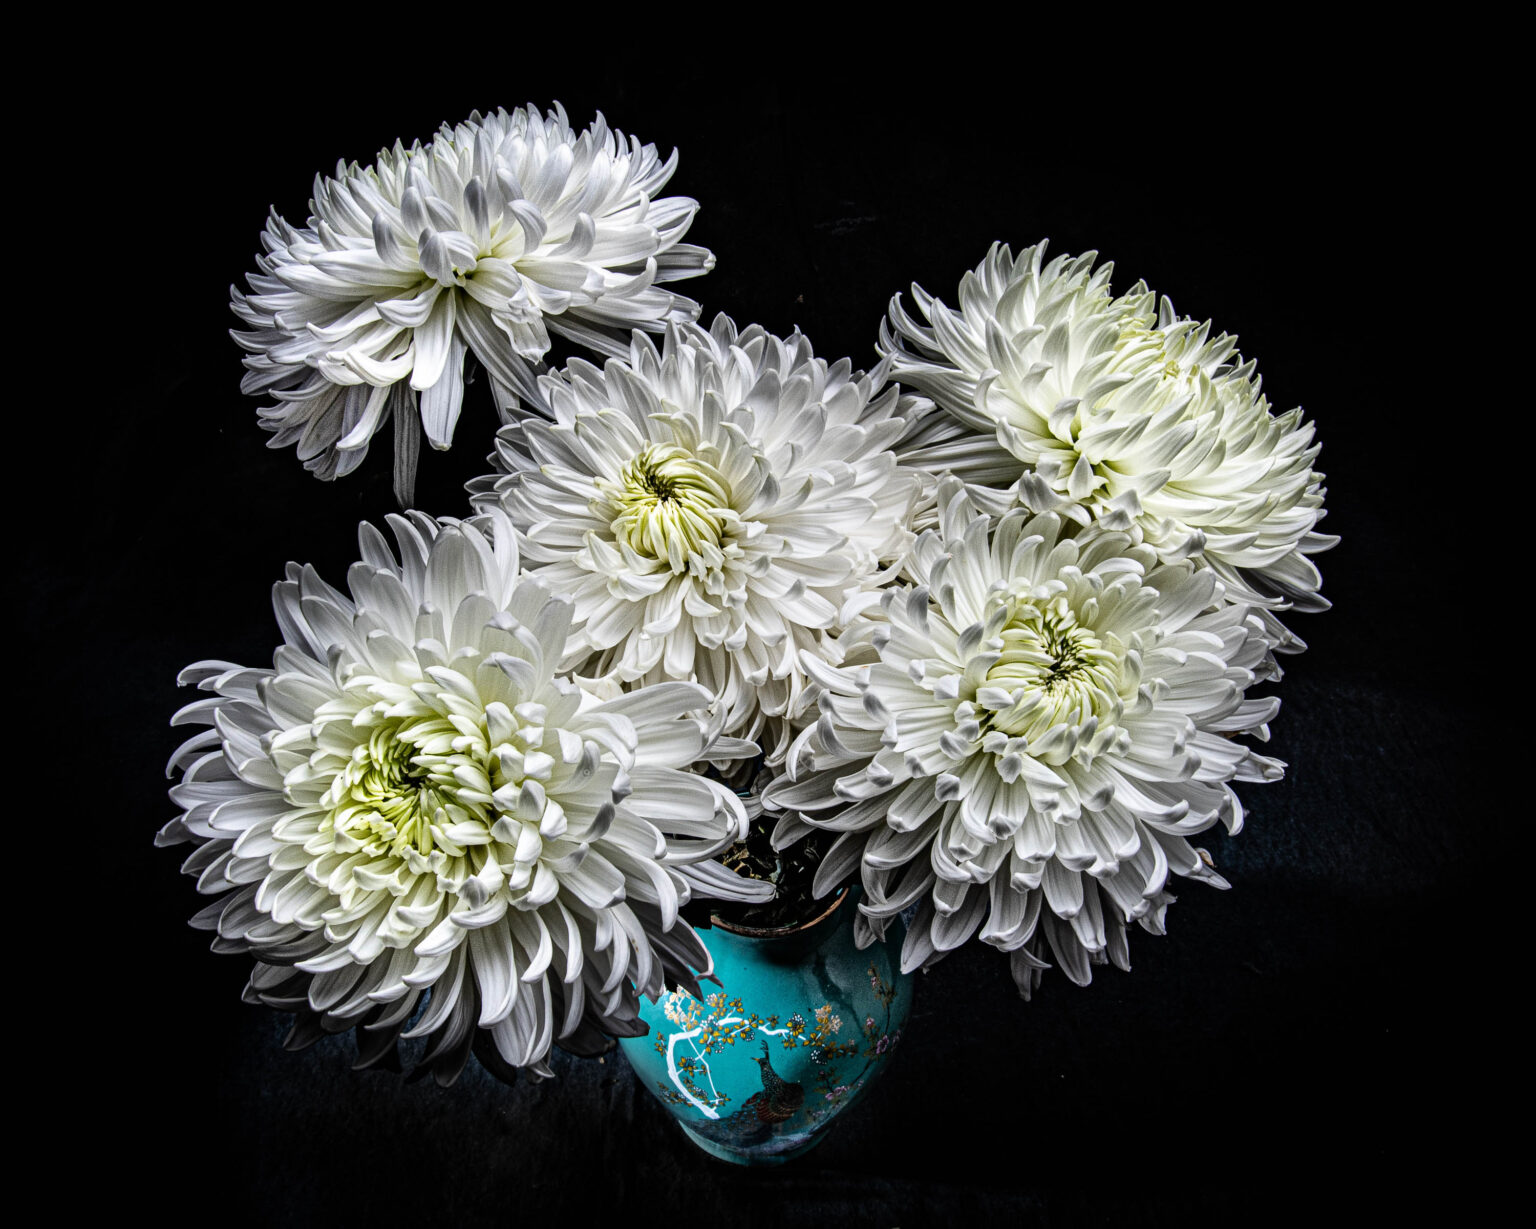 Photograph of a group of white chrysantemums in a teal blue vase decorated with a peacock.